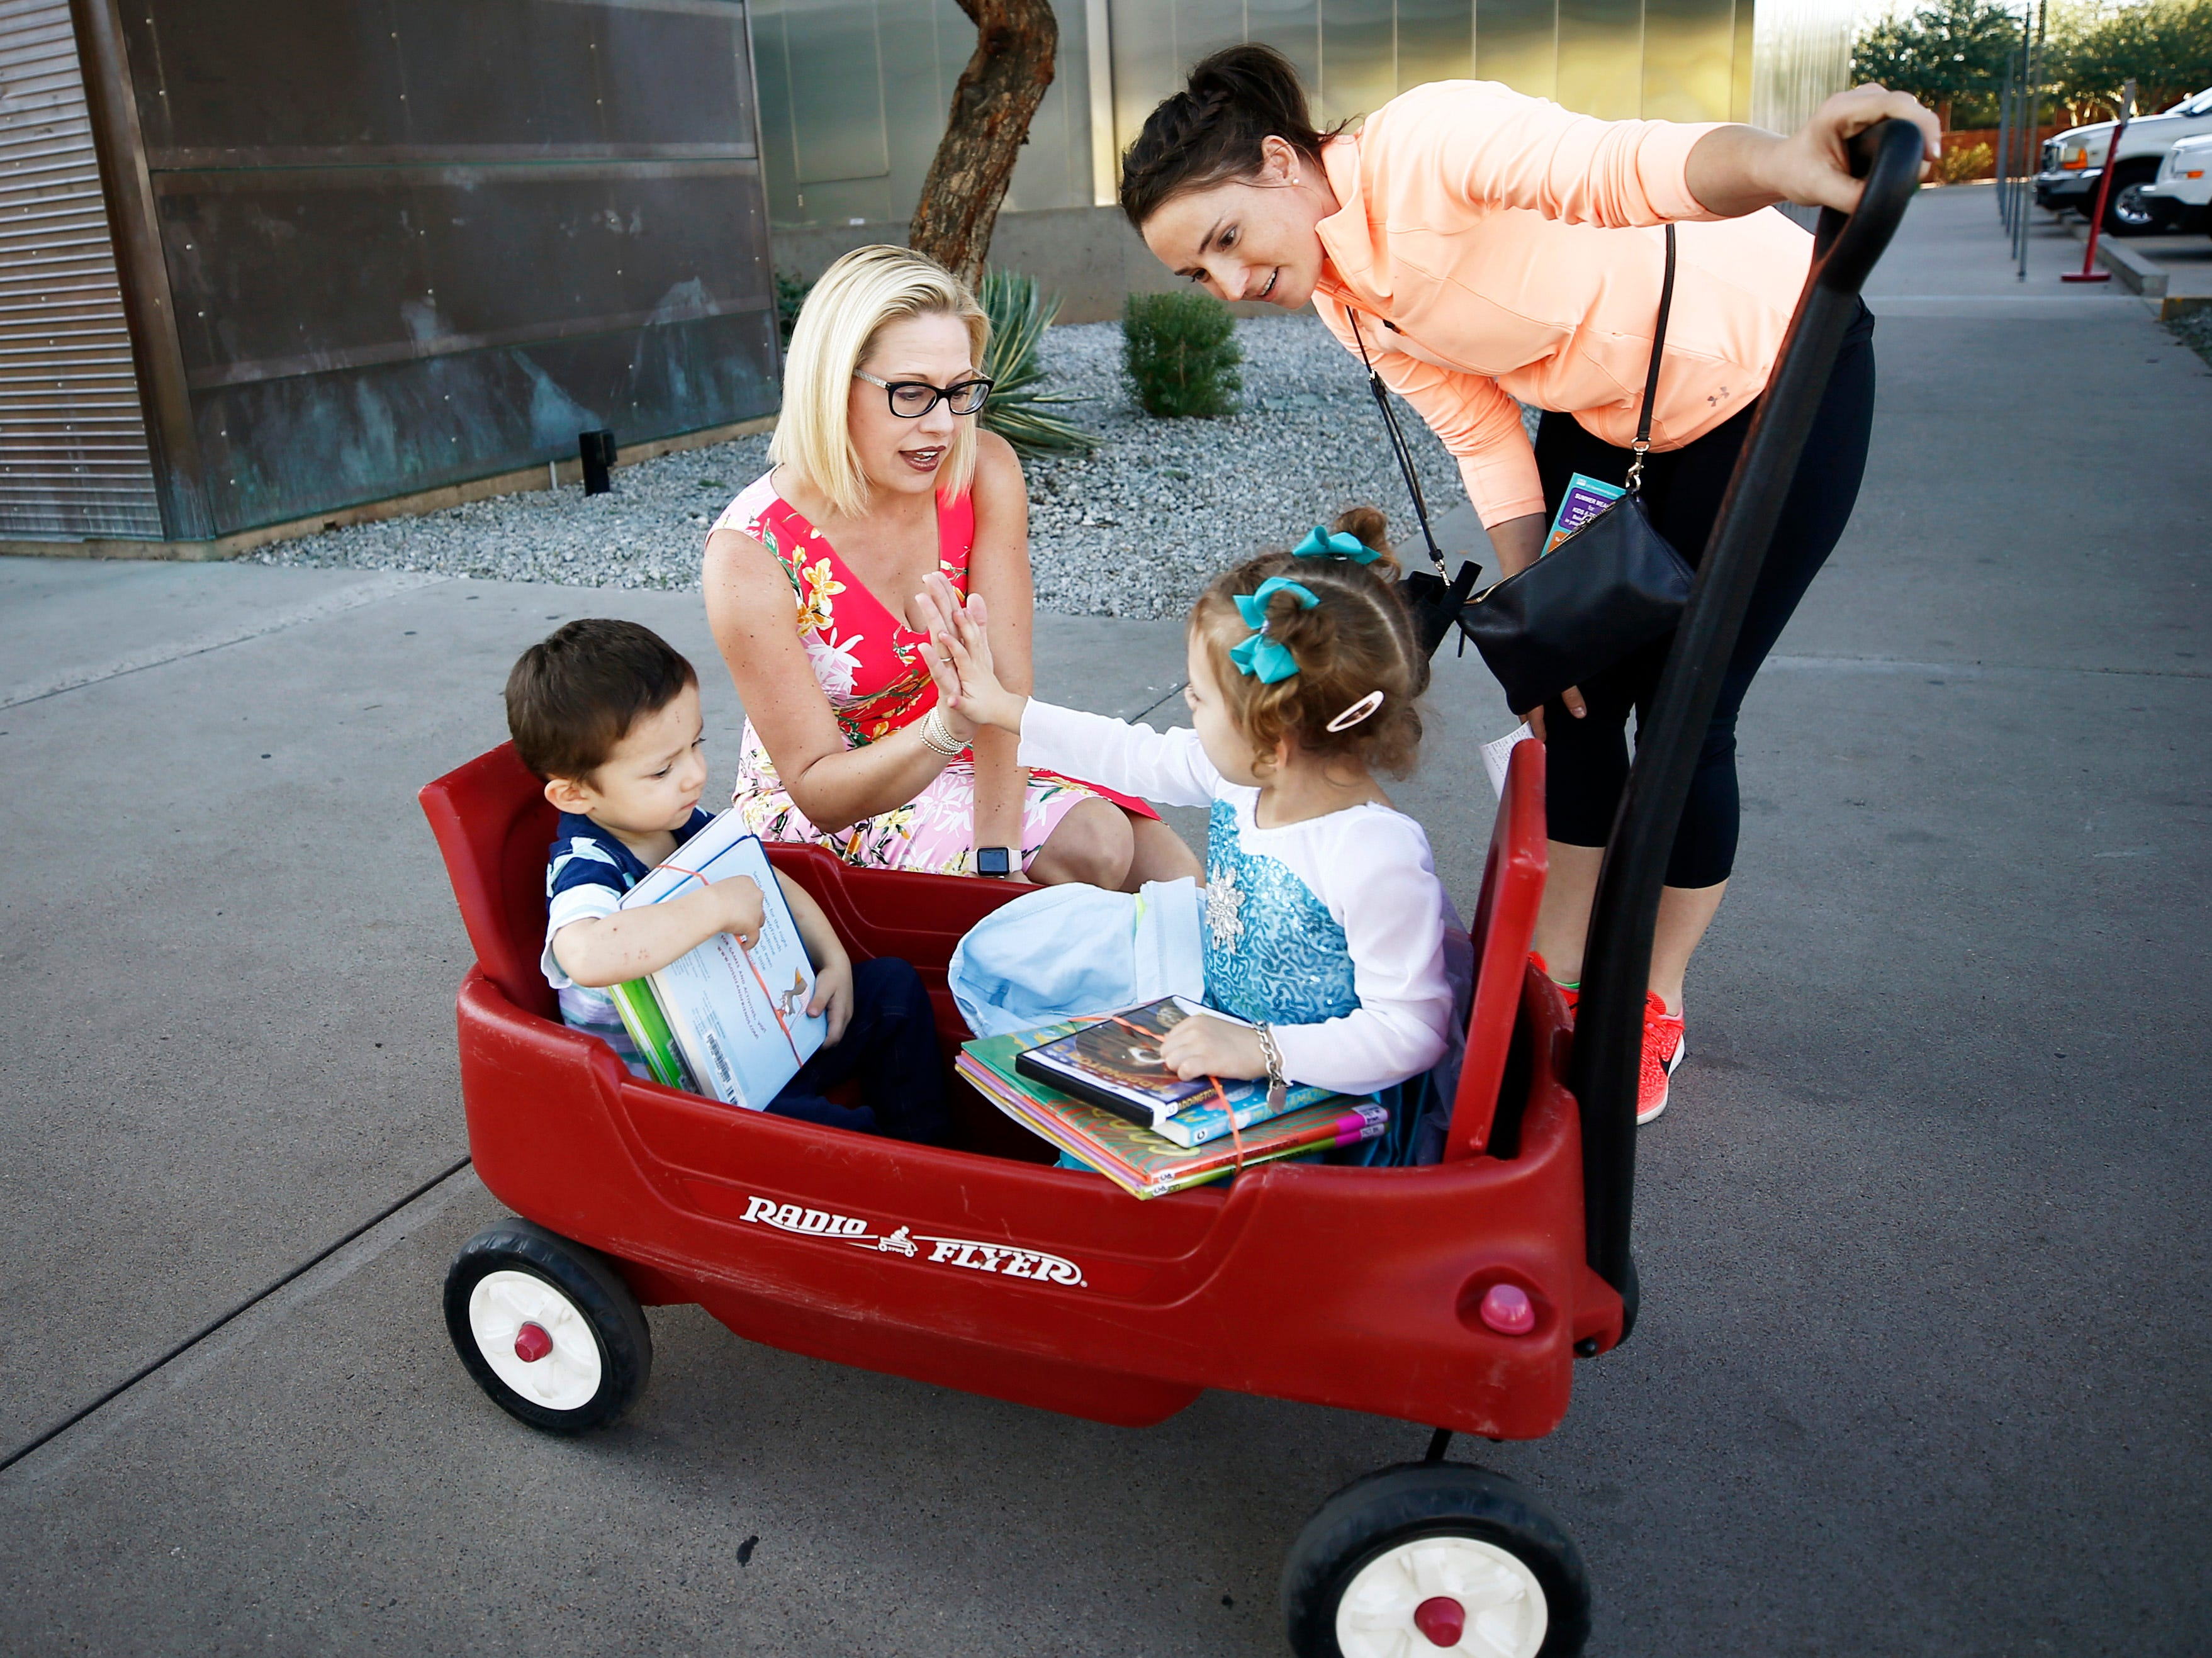 Rep. Kyrsten Sinema, D-Ariz., the Democratic candidate for Arizona's U.S. Senate seat greets Leanna Huerta and her children Xavier and Alexandreia outside a polling center on Nov. 6, 2018 at the Burton Barr Central Library in Phoenix.